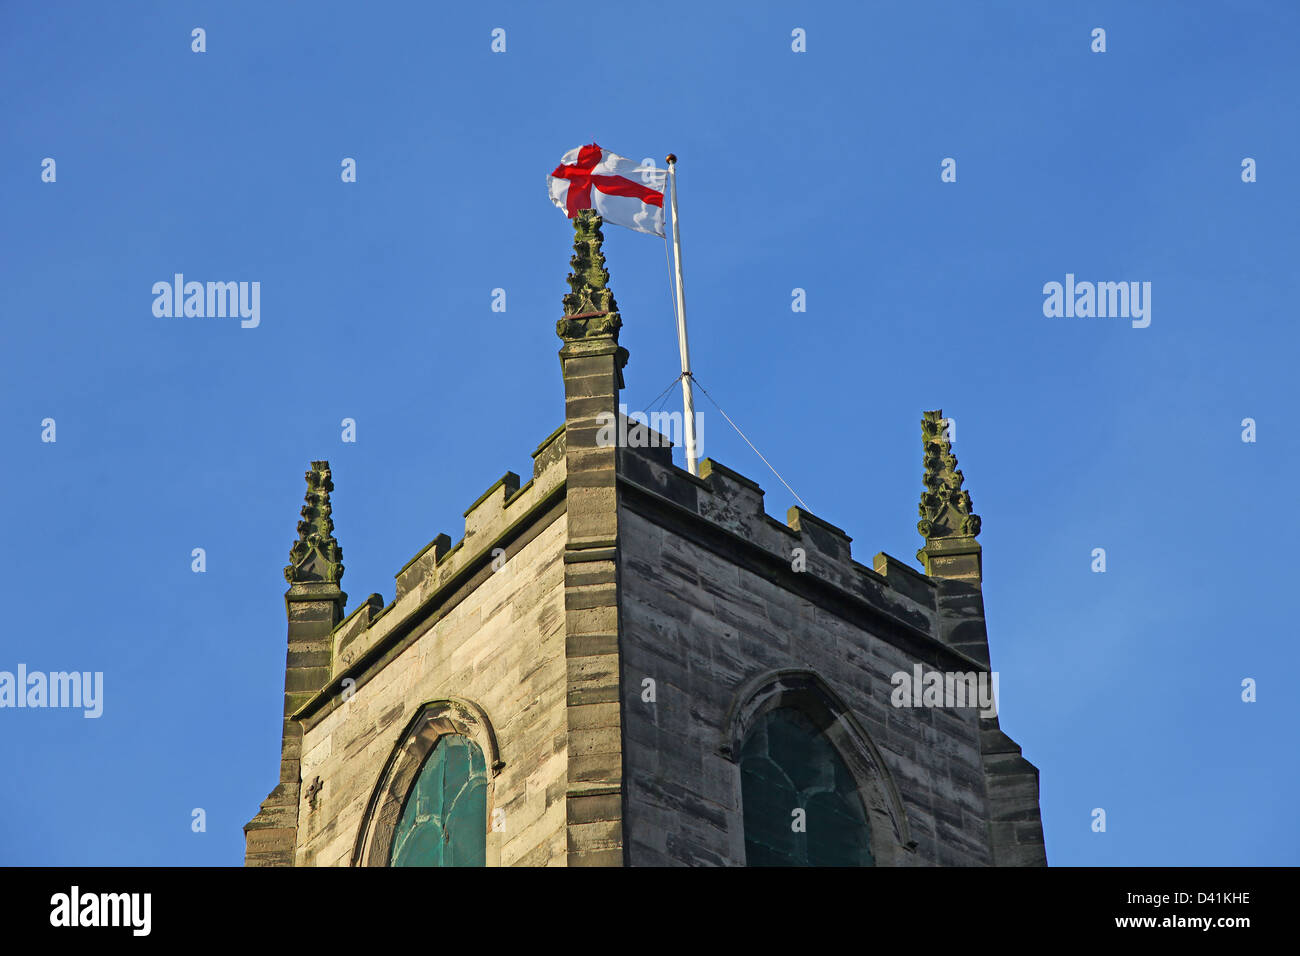 Flag of St George on a flagpole at St Giles the Abbot parish church in Cheadle Staffs Staffordshire England UK - Stock Image